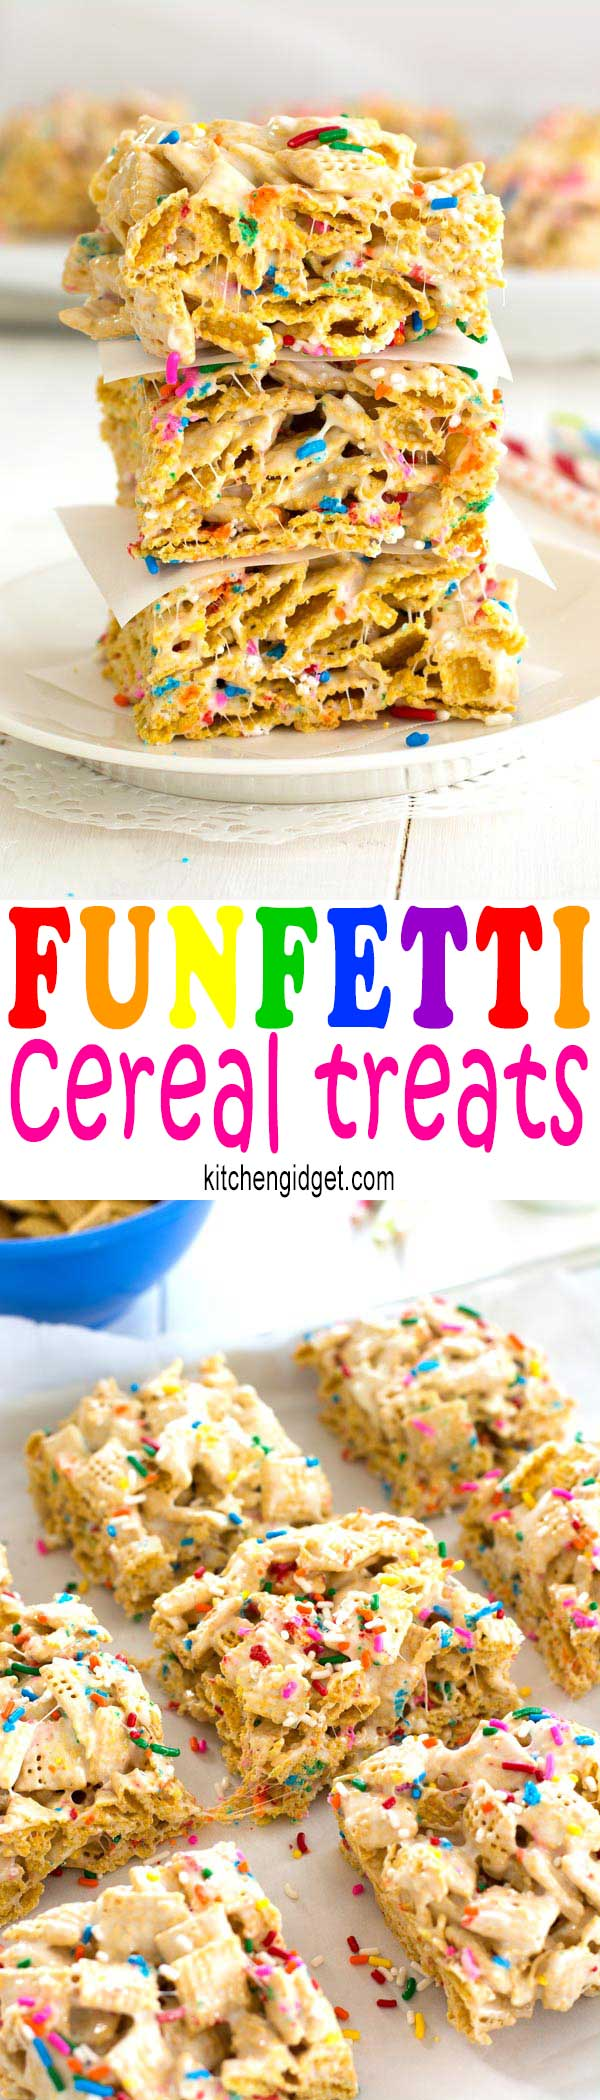 Funfetti Marshmallow Crispy Treats - cereal bars made with Chex, sprinkles and a hint of vanilla!